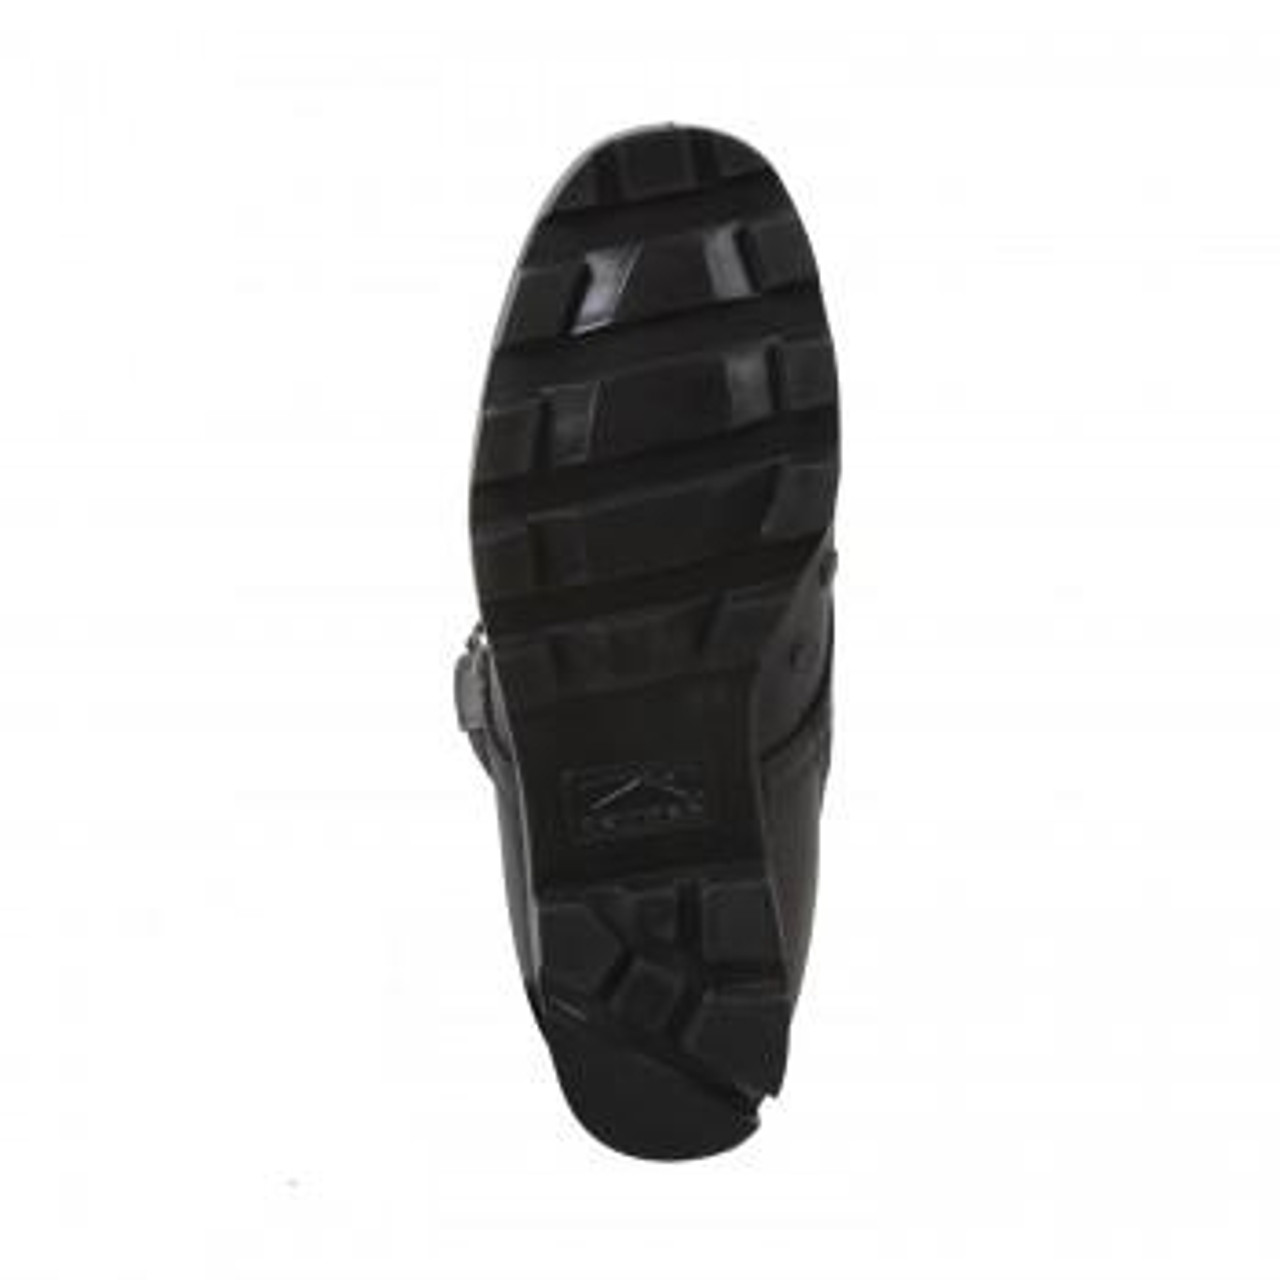 Black G.I. Type Speedlace Jungle Boot from Hessen Tactical